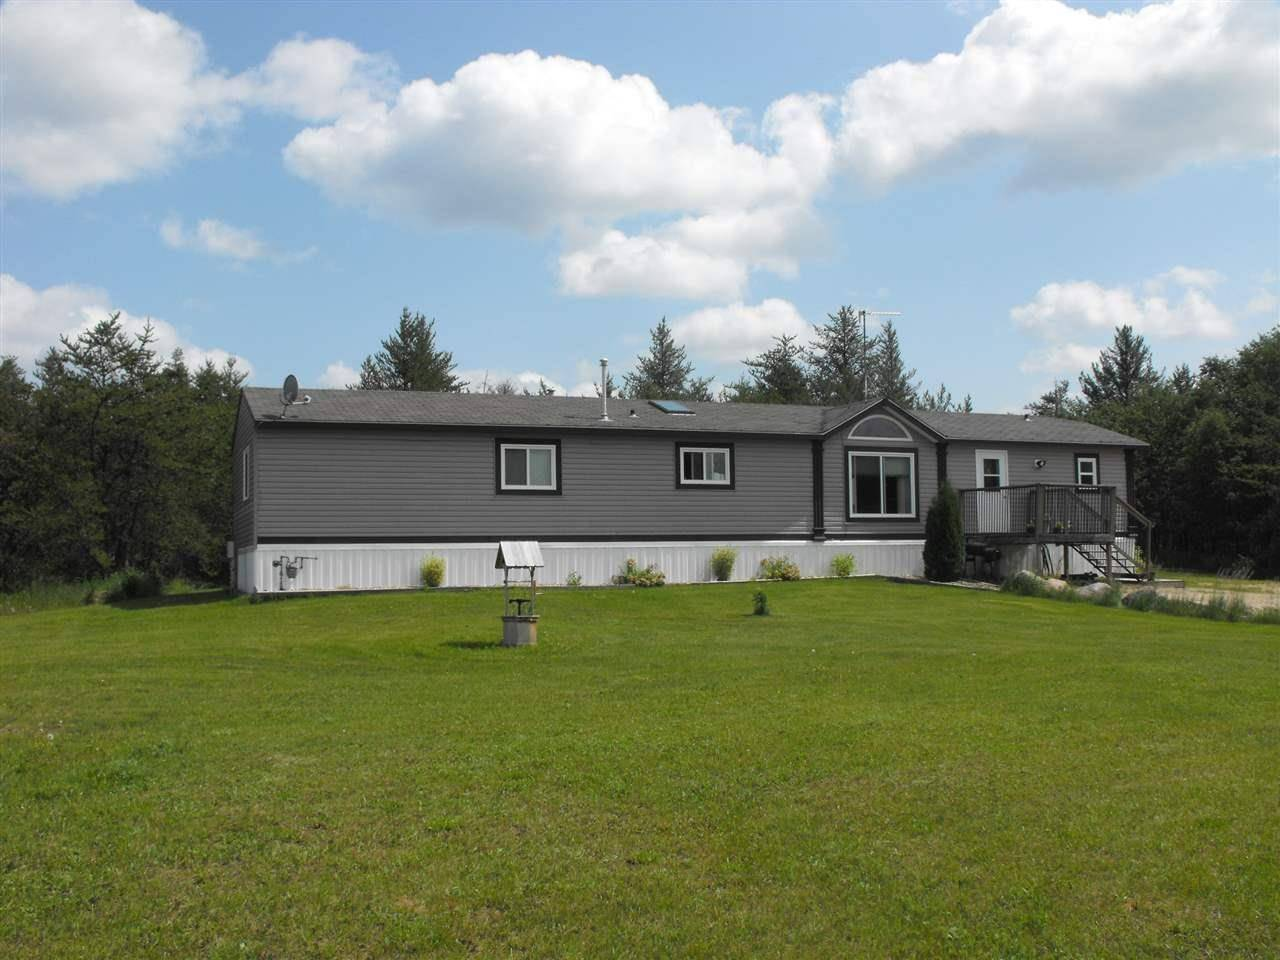 Home for sale at 56514 Rr 60 Rd Unit 140 Rural St. Paul County Alberta - MLS: E4187455